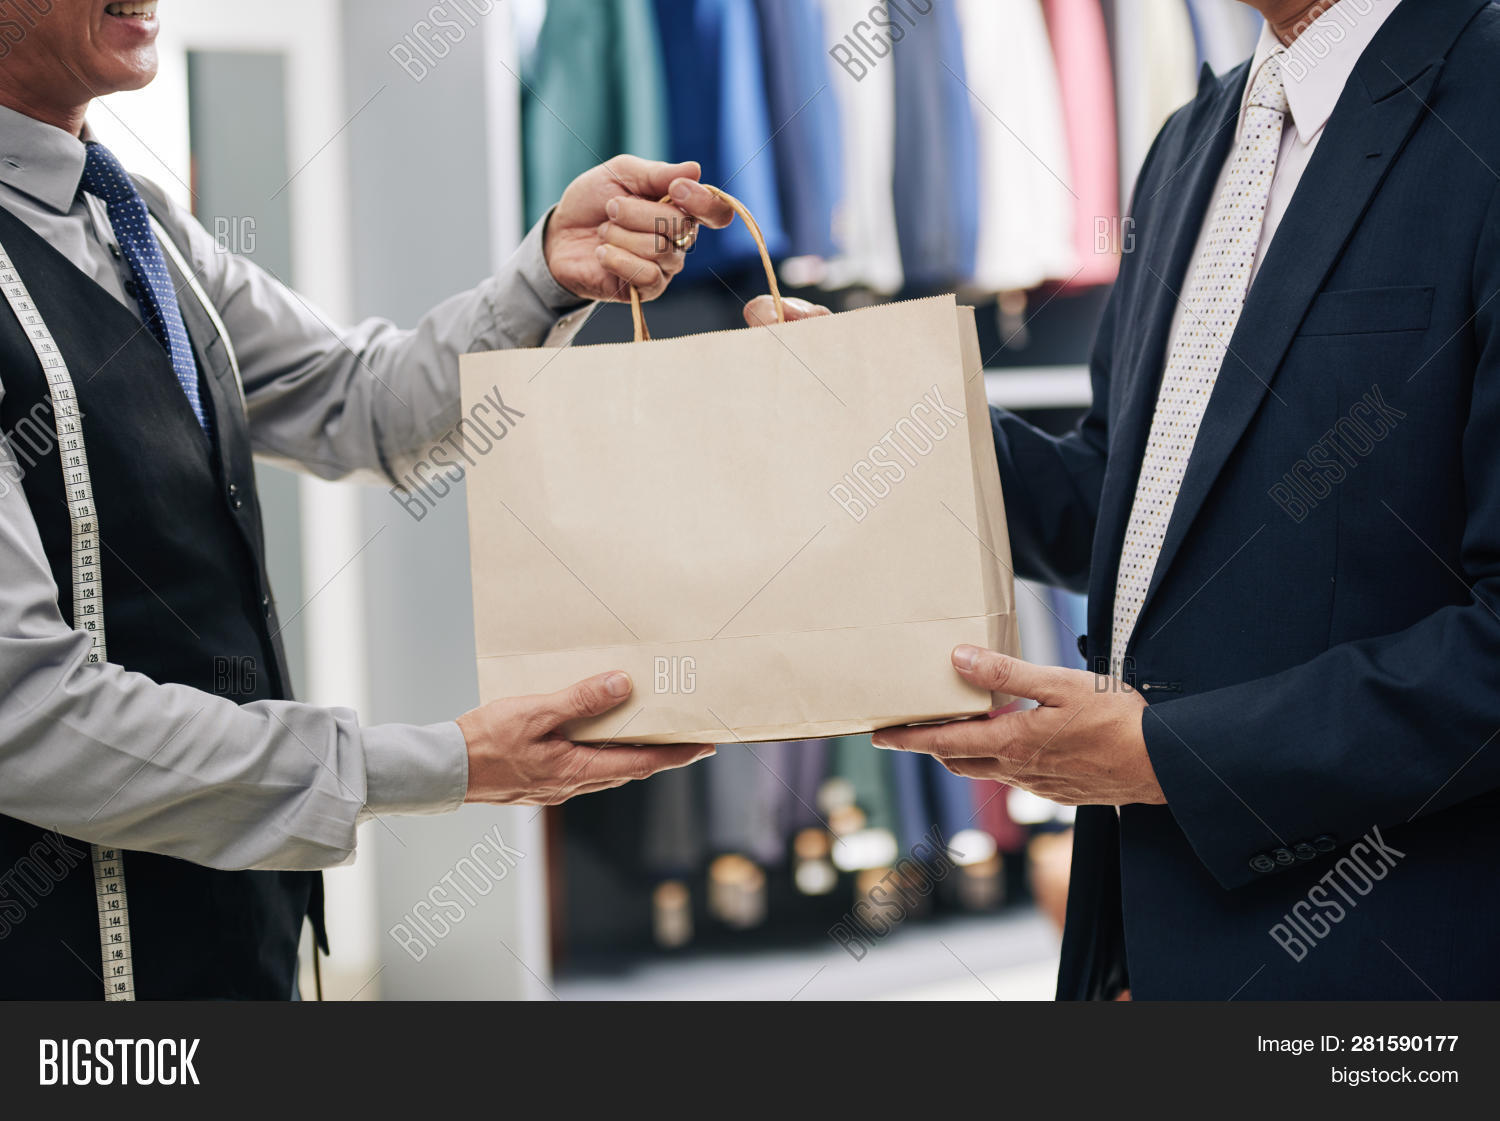 Man Receiving Paper-bag From Menswear Shop Assistant